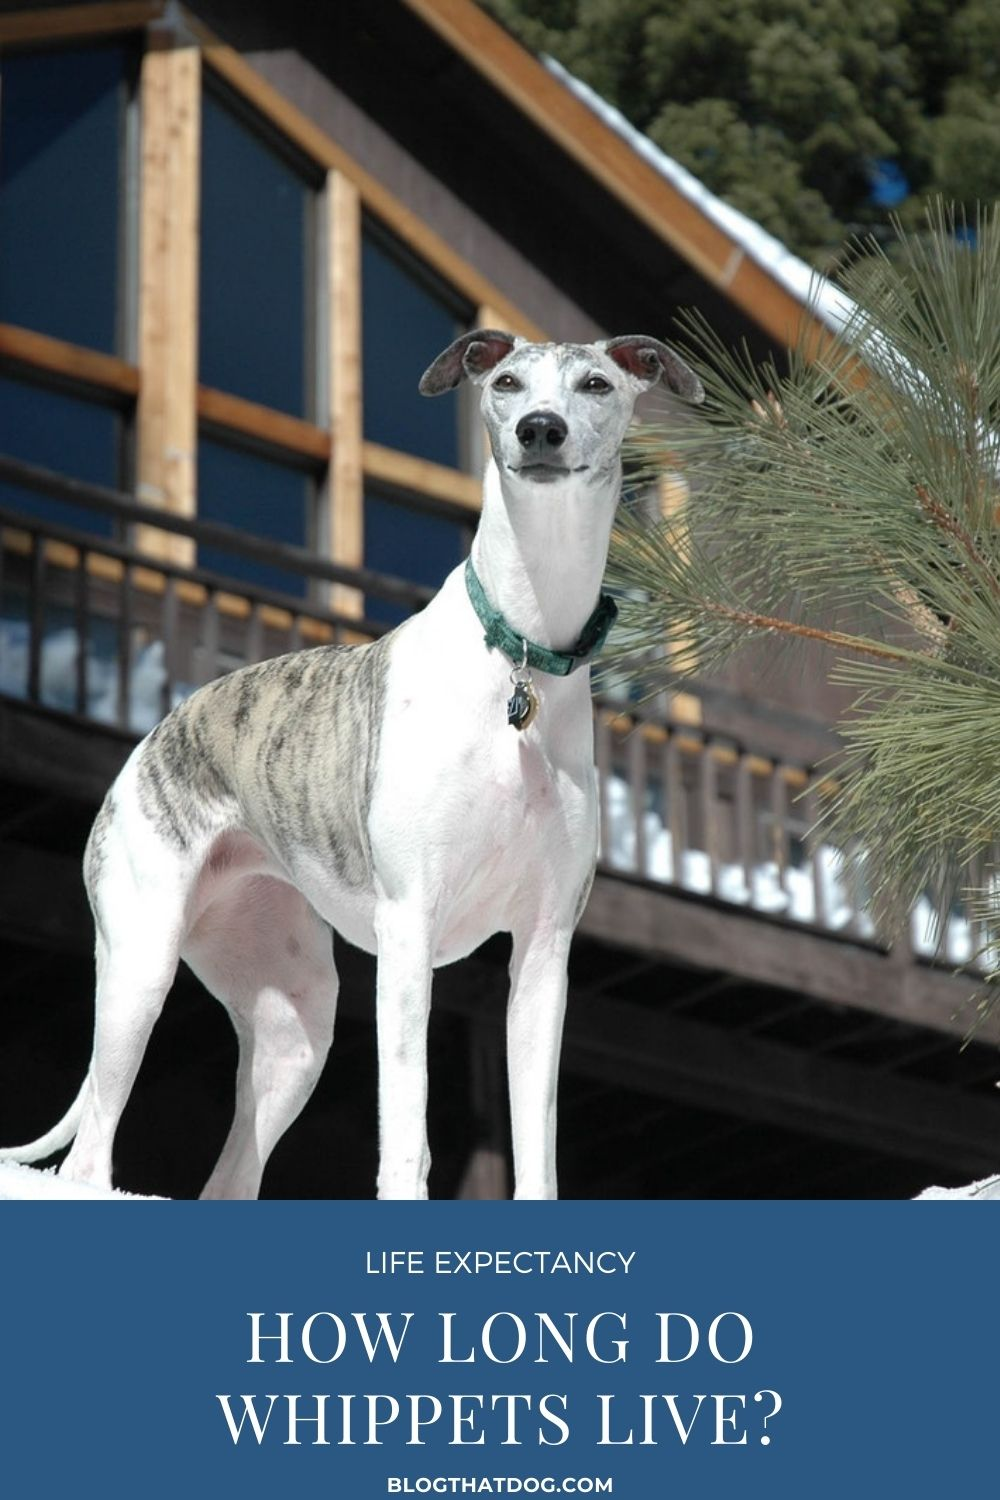 Whippet lifespan: How long do whippets live?